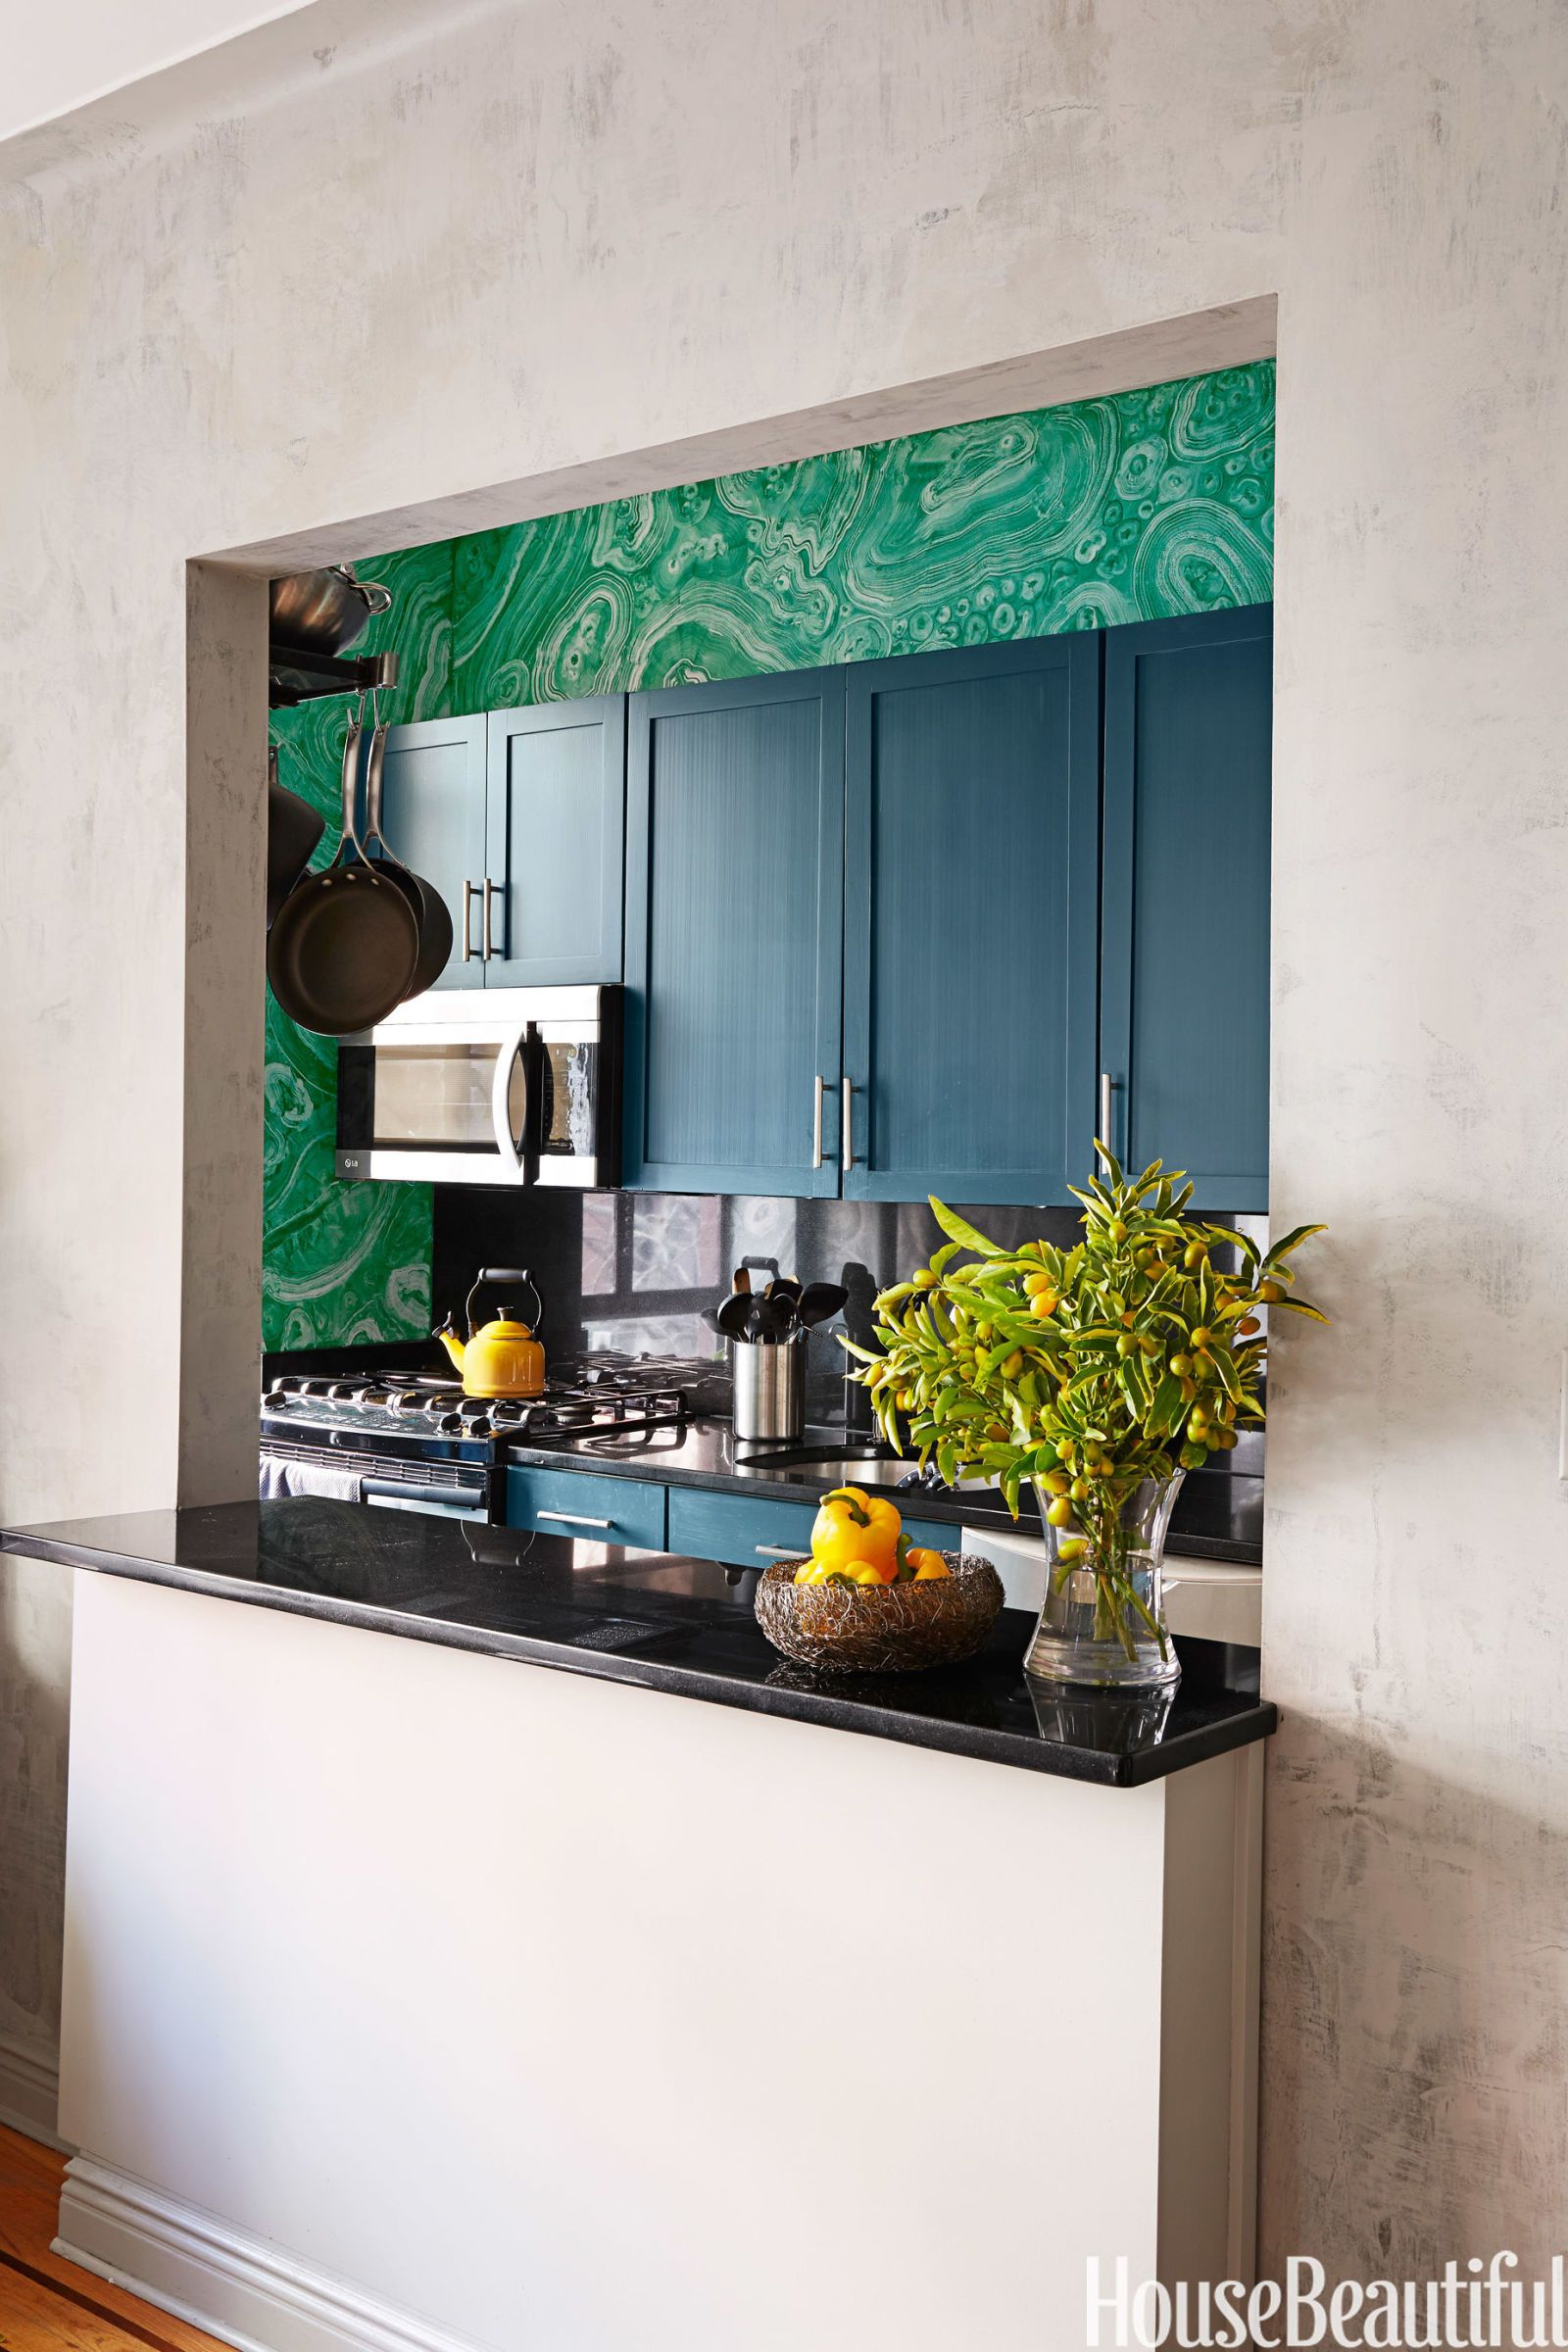 30 Best Small Kitchen Design Ideas - Decorating Solutions ... on Best Small Kitchens  id=20918